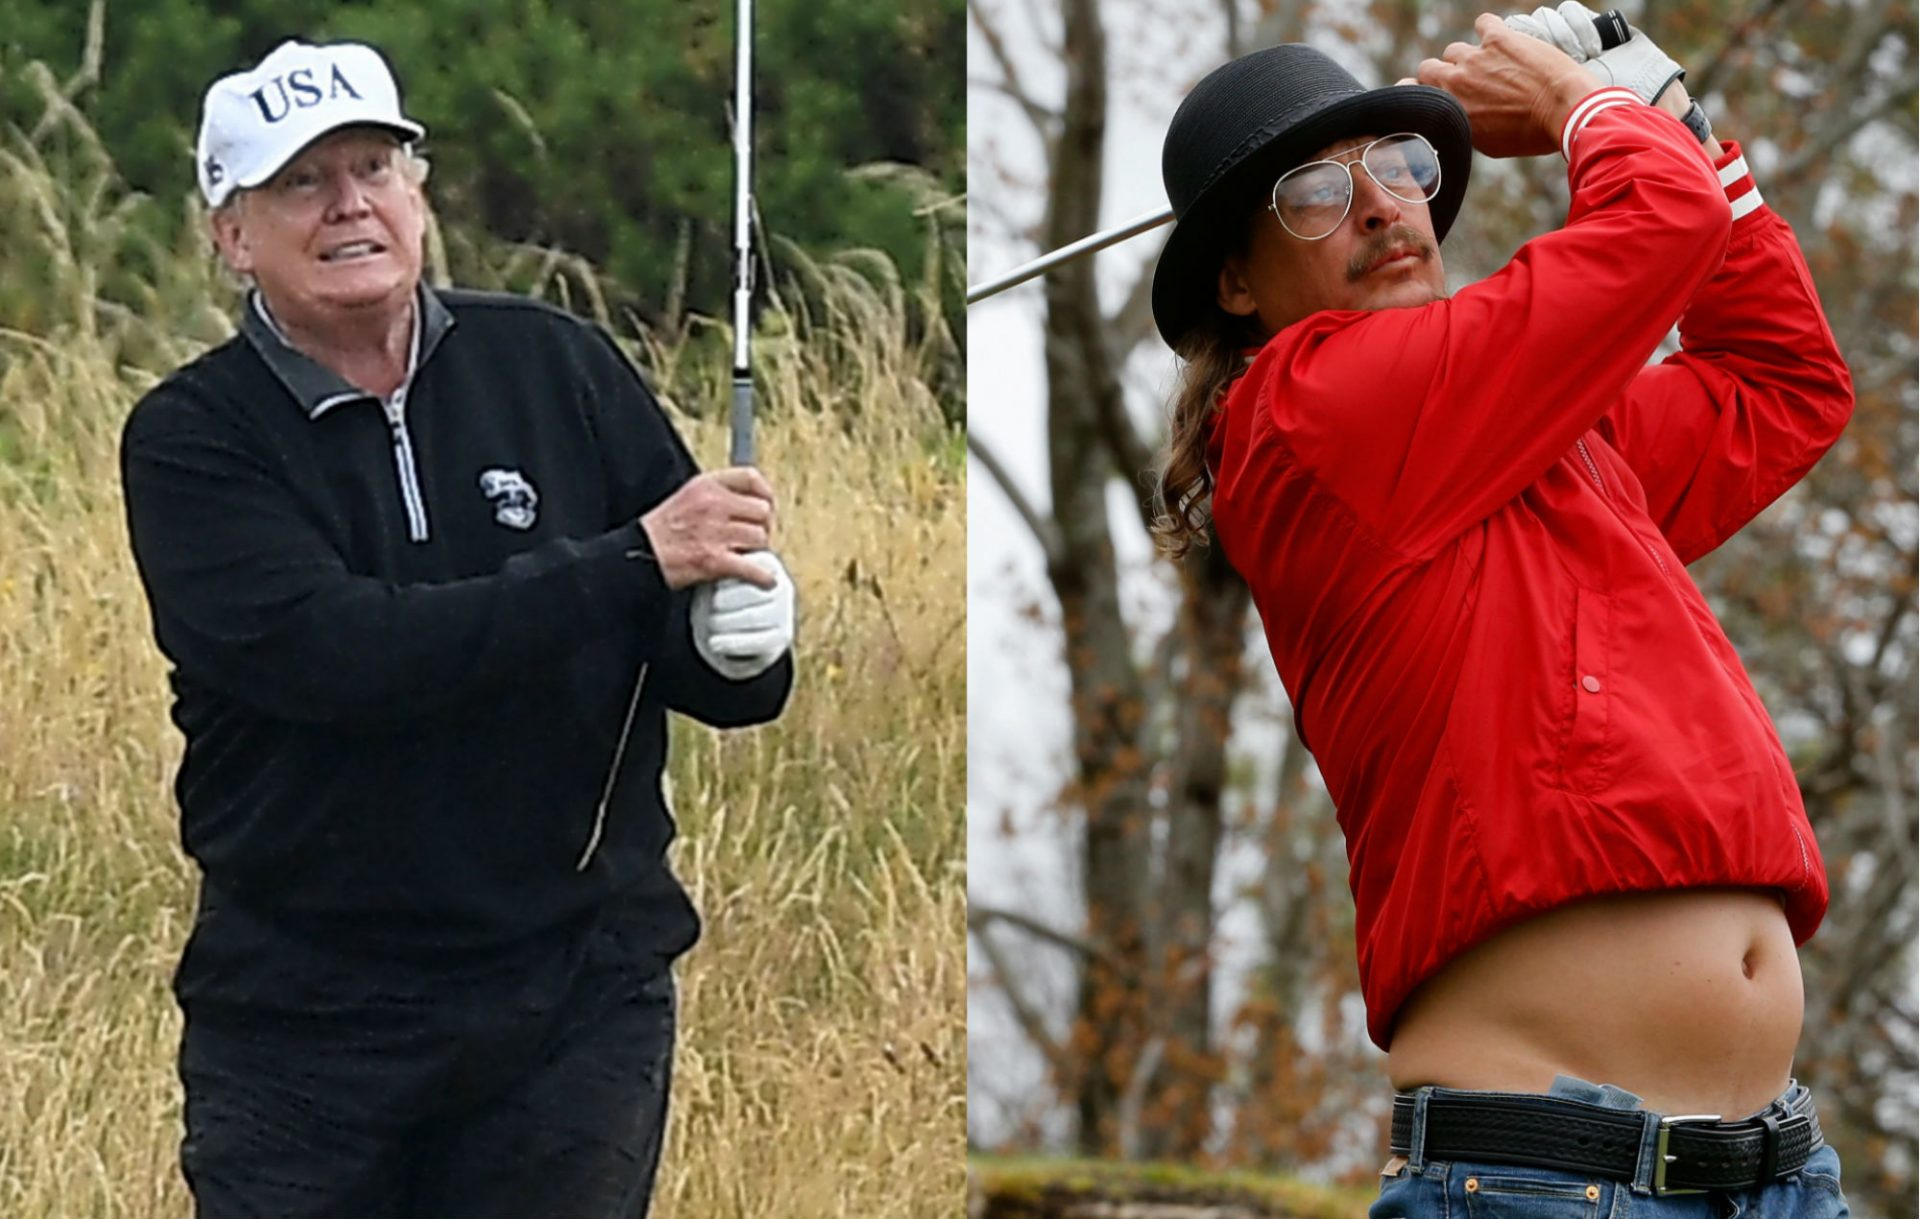 Donald Trump and Kid Rock went golfing together